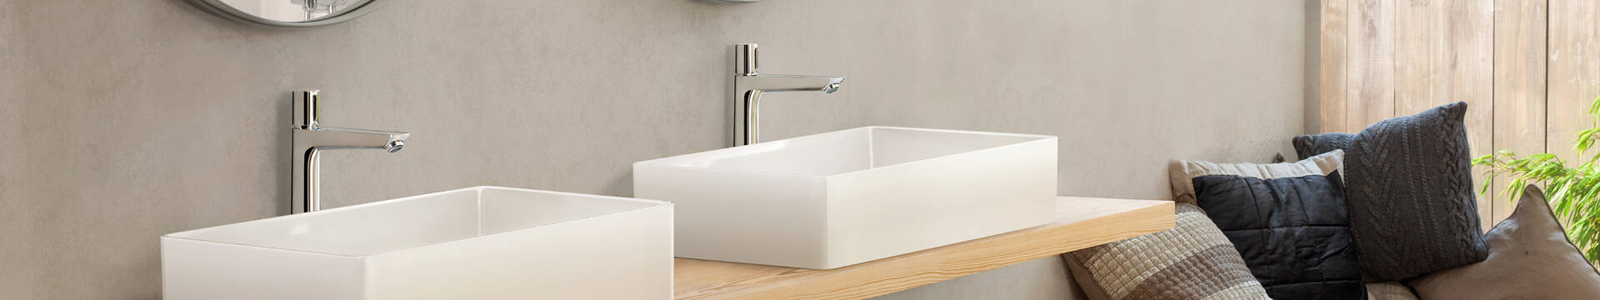 Hansgrohe Faucet Banner